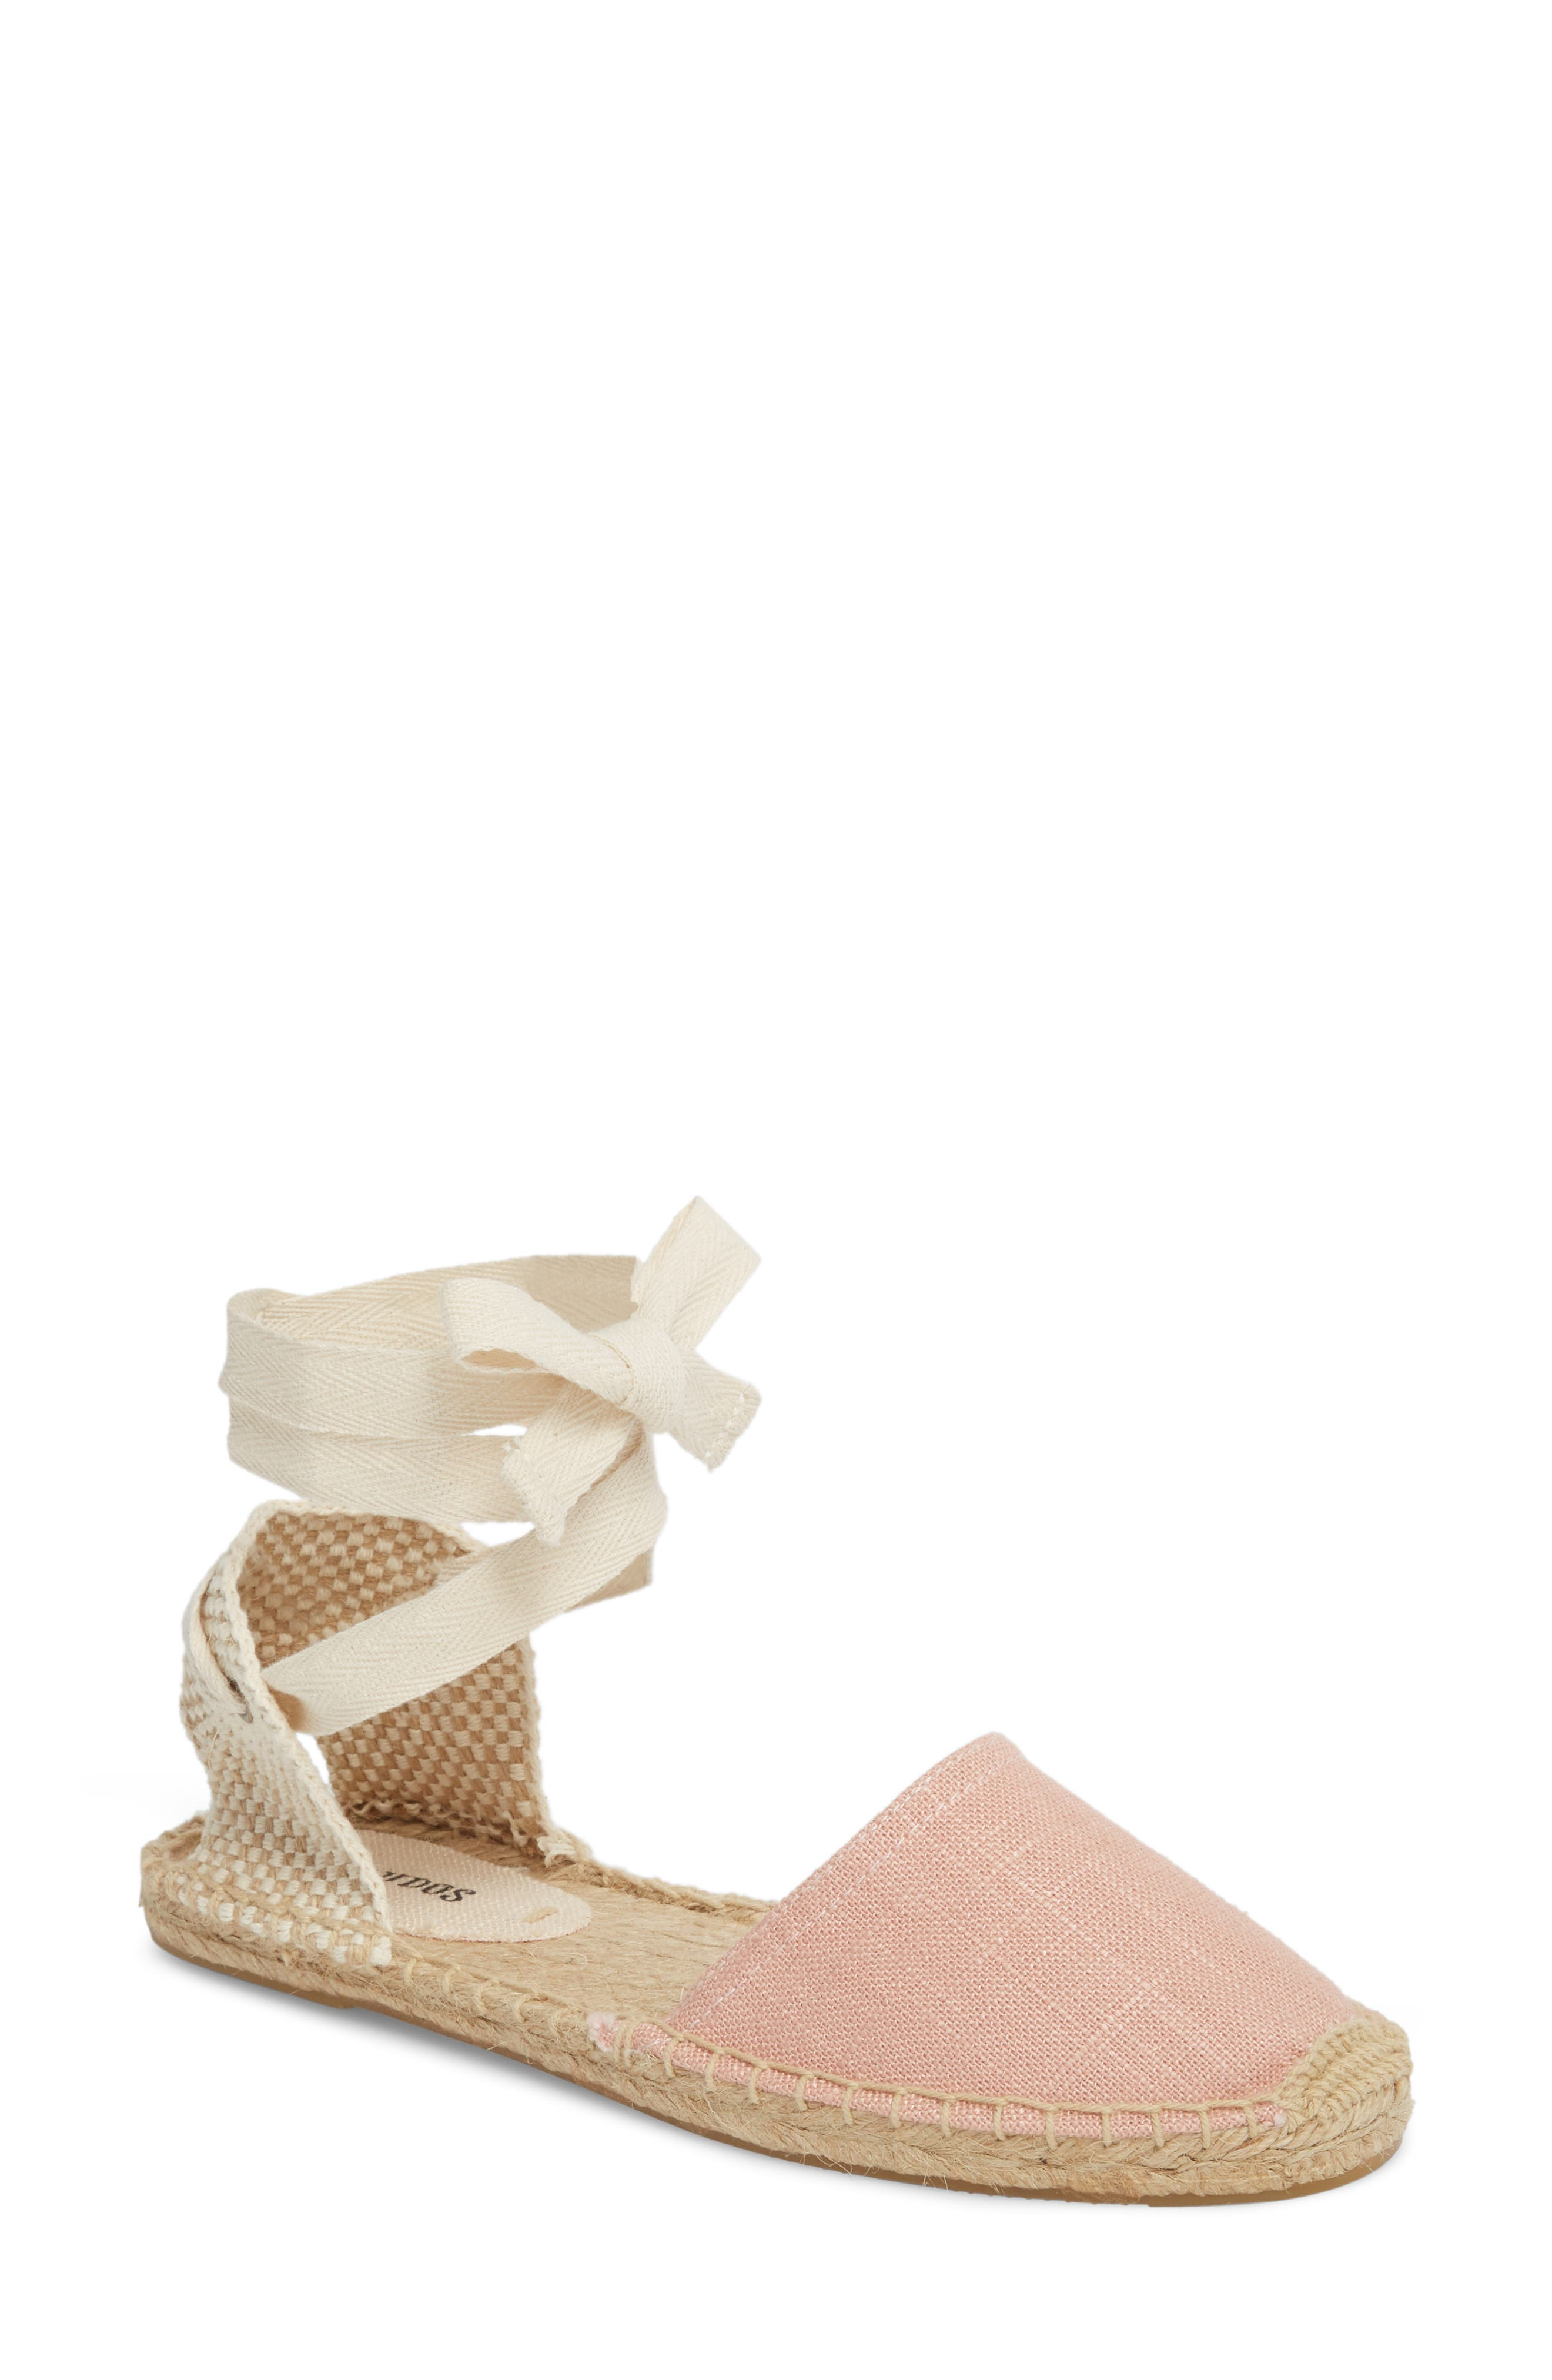 Classic Espadrille Sandal,                             Main thumbnail 1, color,                             Dusty Rose Fabric